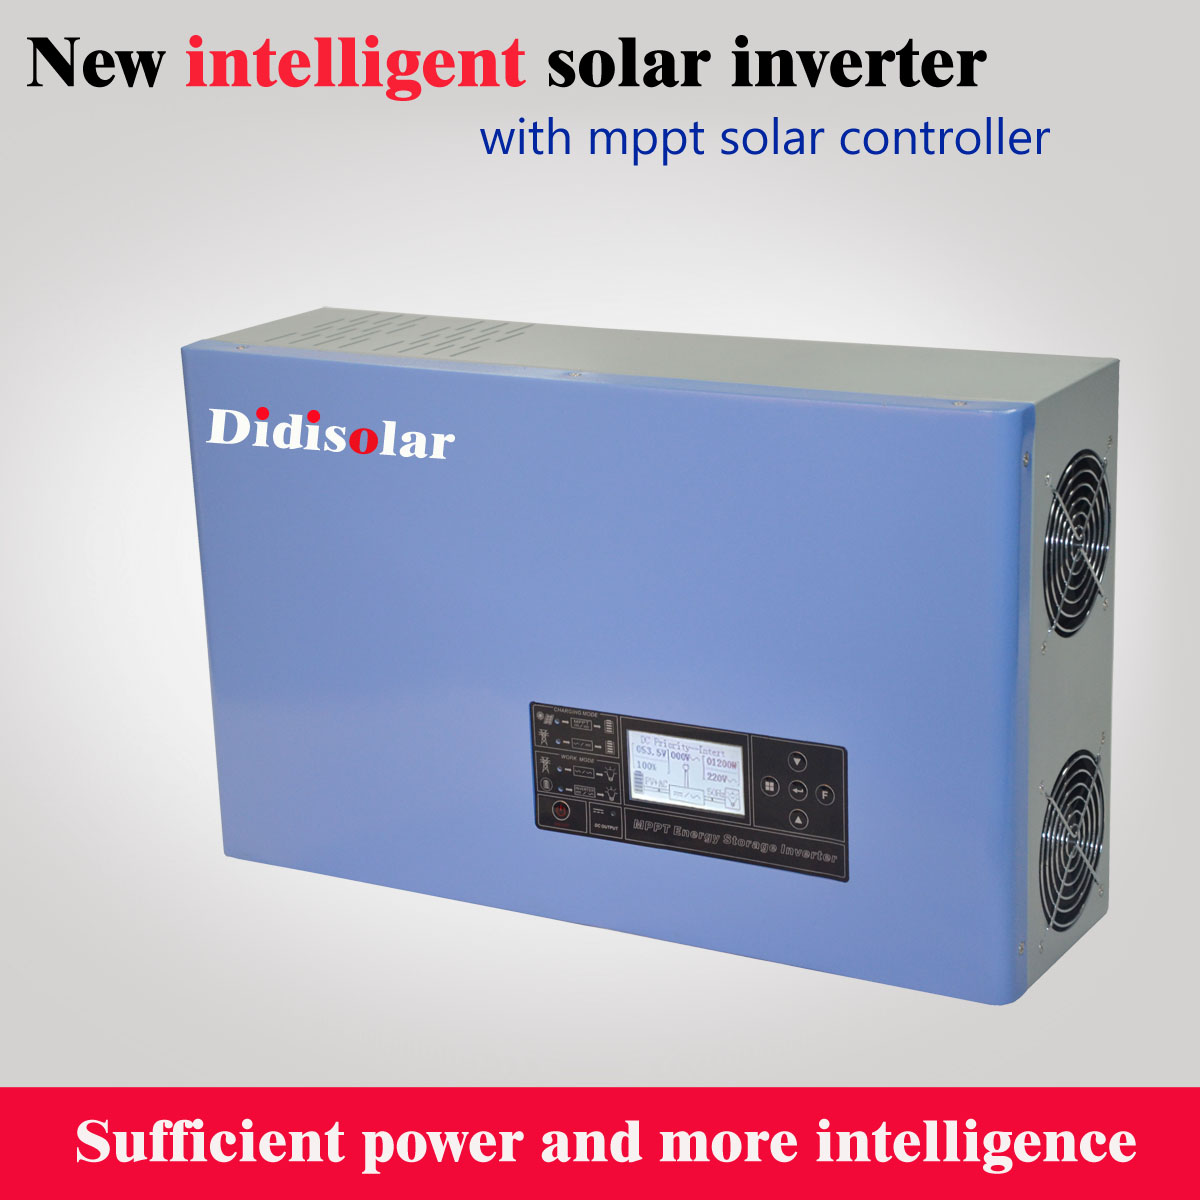 How to set up the lithium battery for Didisolar solar inverter